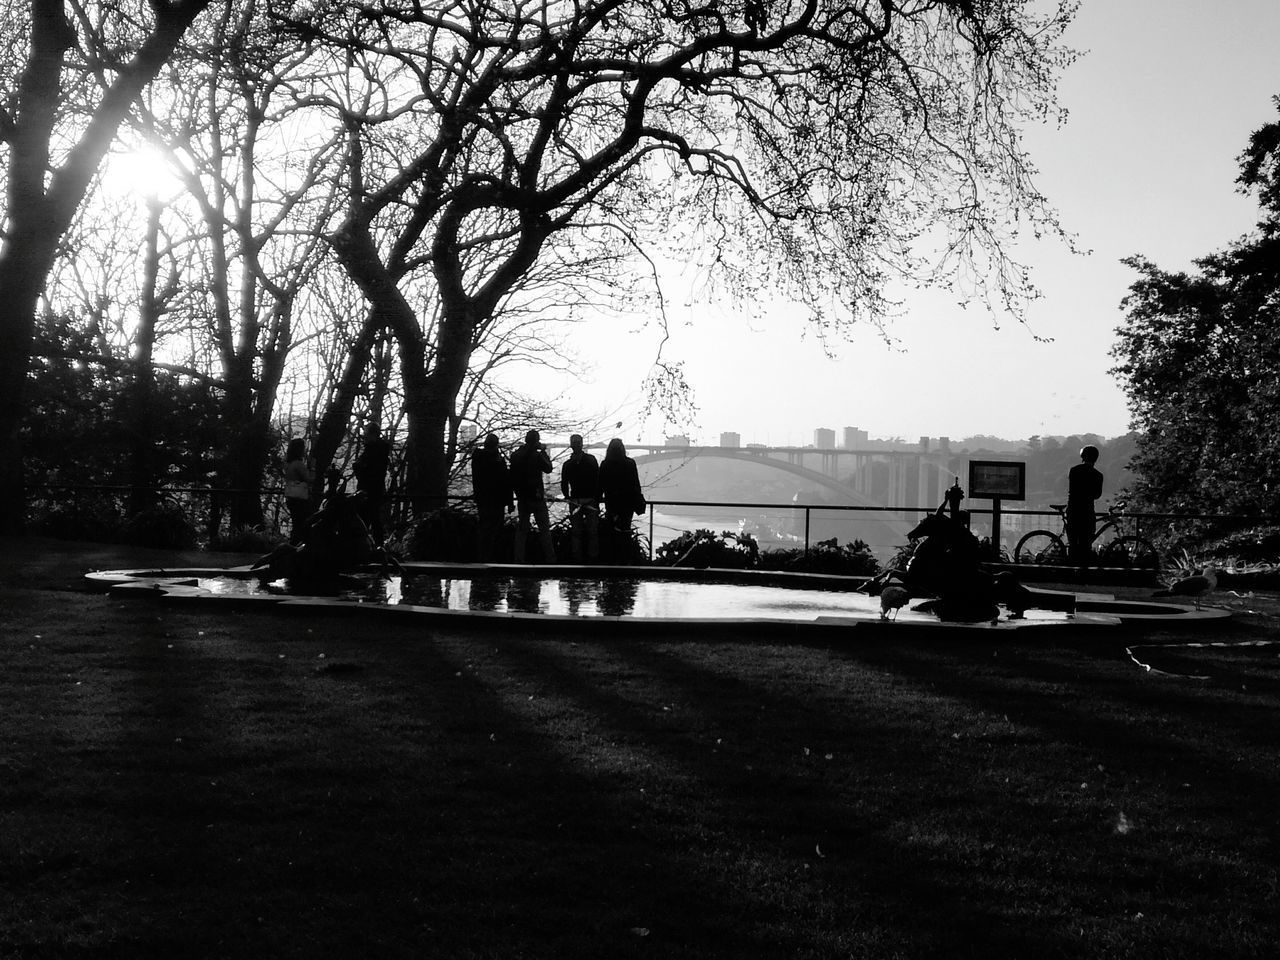 Tree Sky Sunset Bridge - Man Made Structure Urban Gardening Bnw_captures Minimalism Picture In A Frame Porto, Portugal Tranquility FriendshipSilhouette Photography Backlight And Shadows Silhouettes Of People